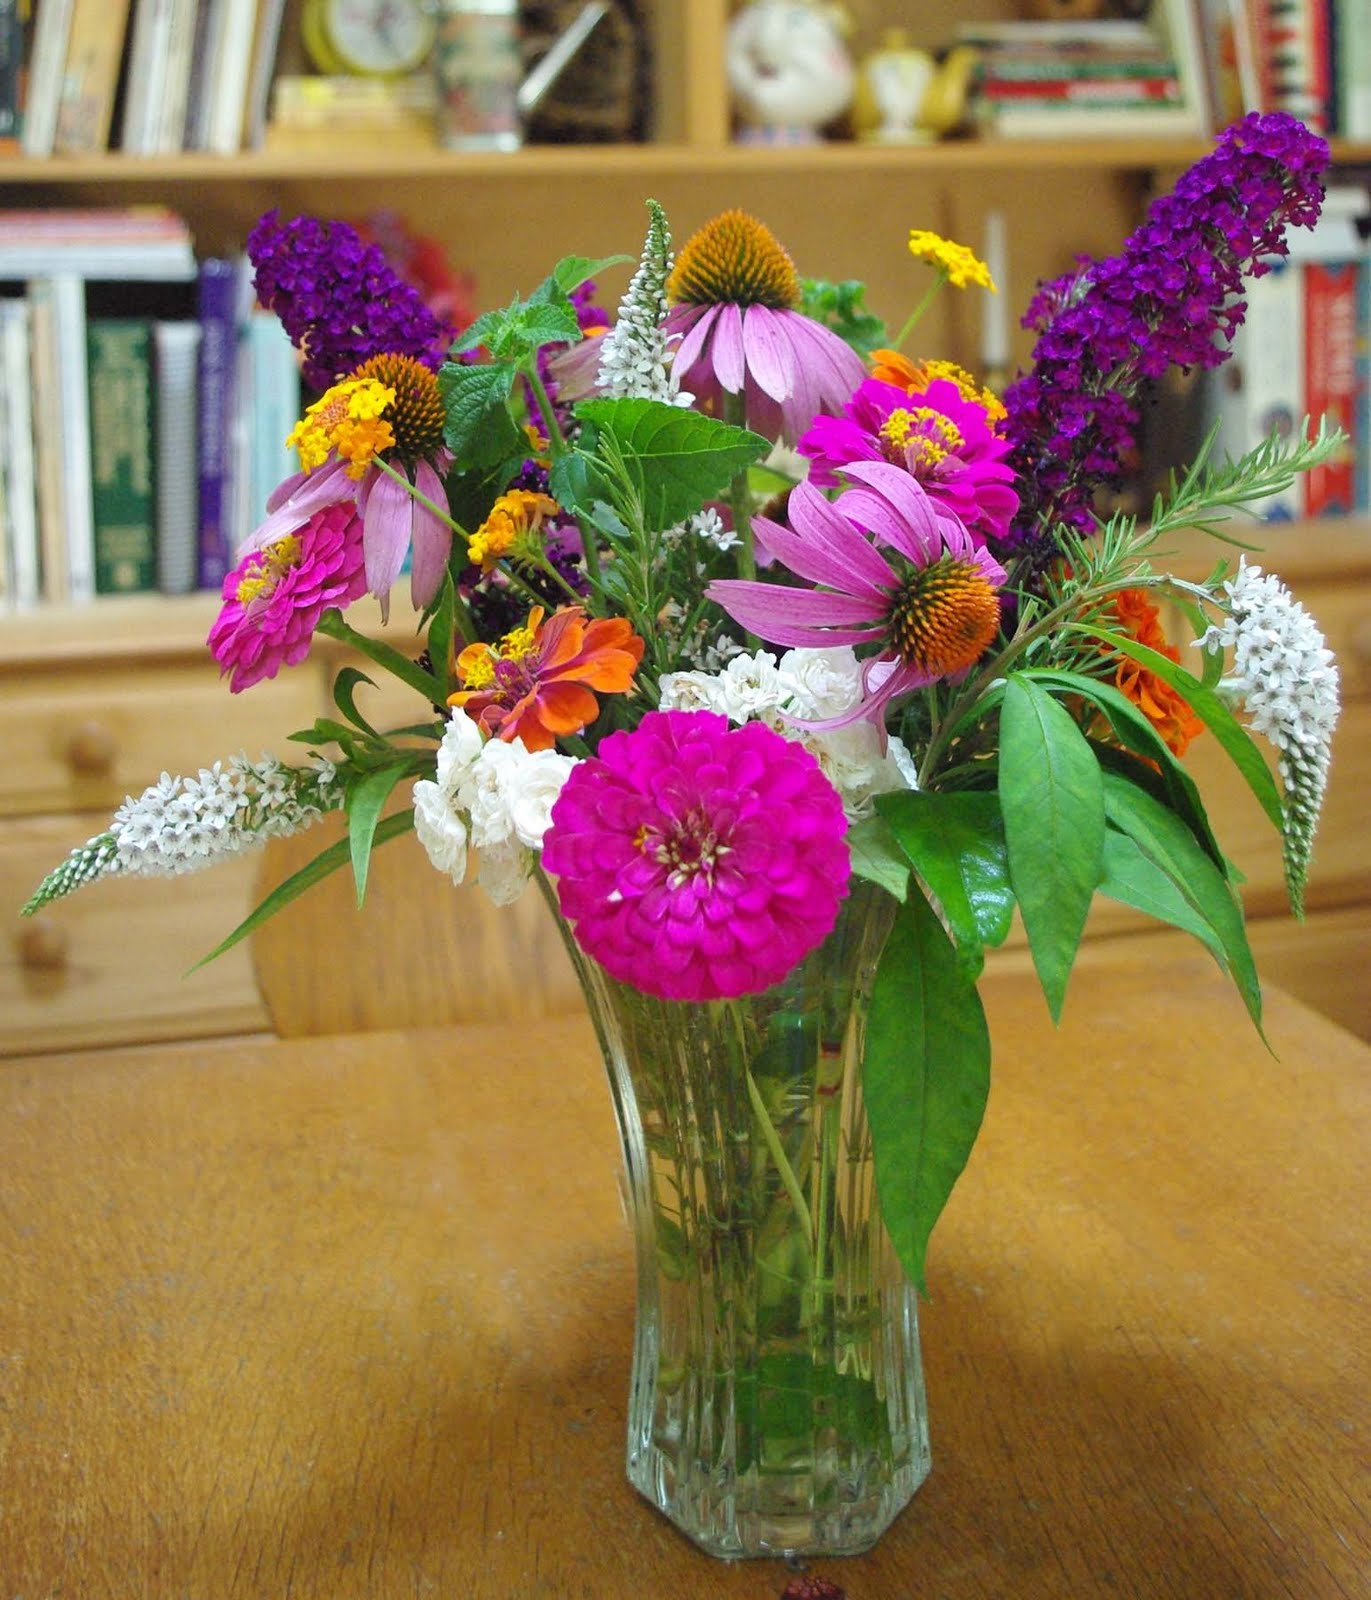 Flowers In Vase: Pictures Of Flowers In A Vase